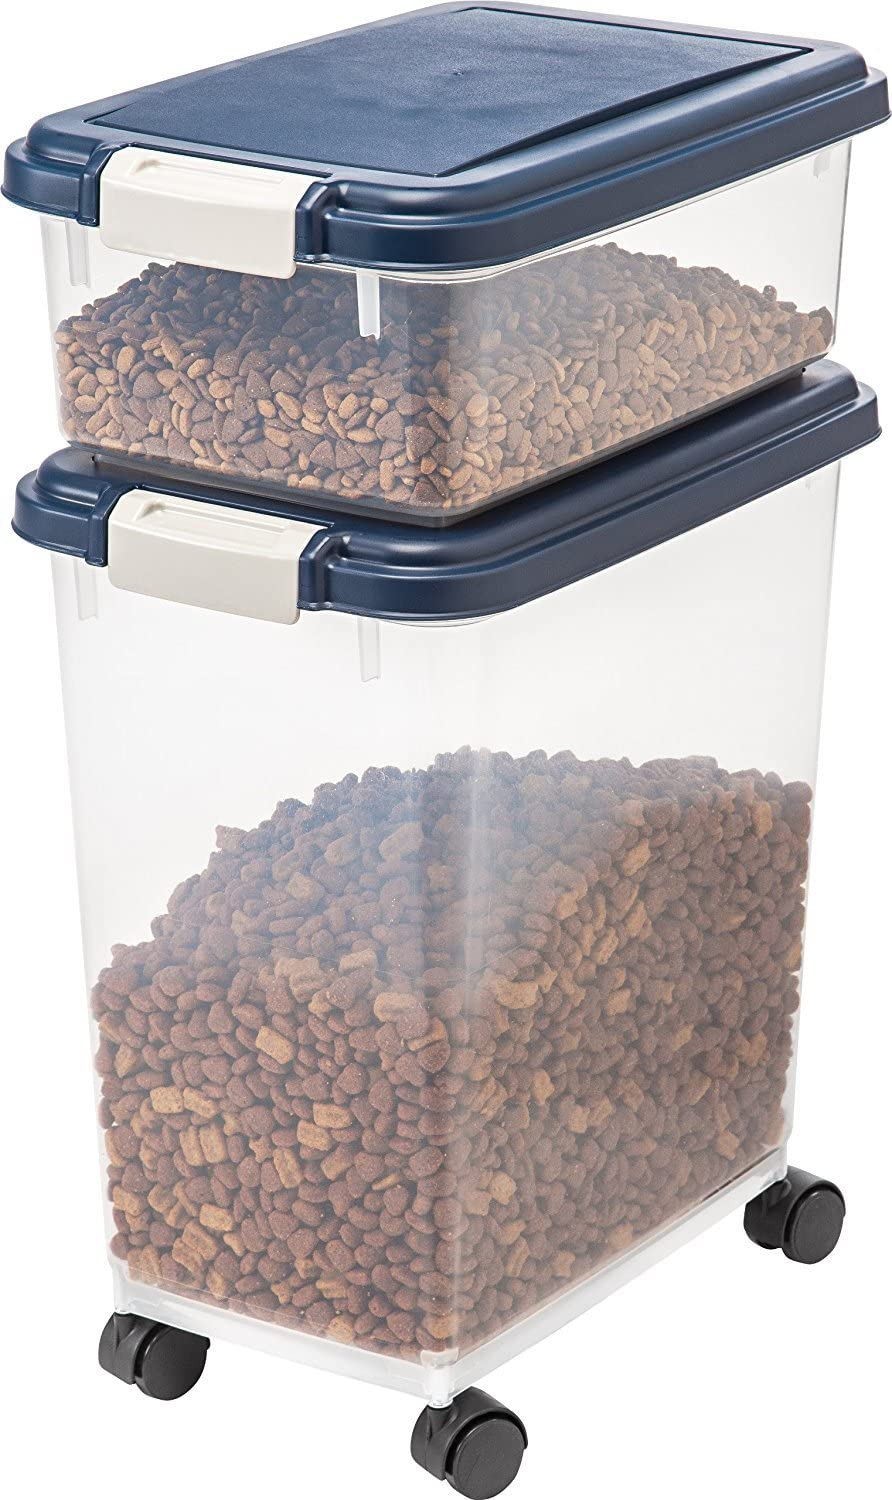 Clinsam 3-Pieces Airtight Pet Food Storage Container Rolling Treat Cat Dog Bird Combo Navy Blue